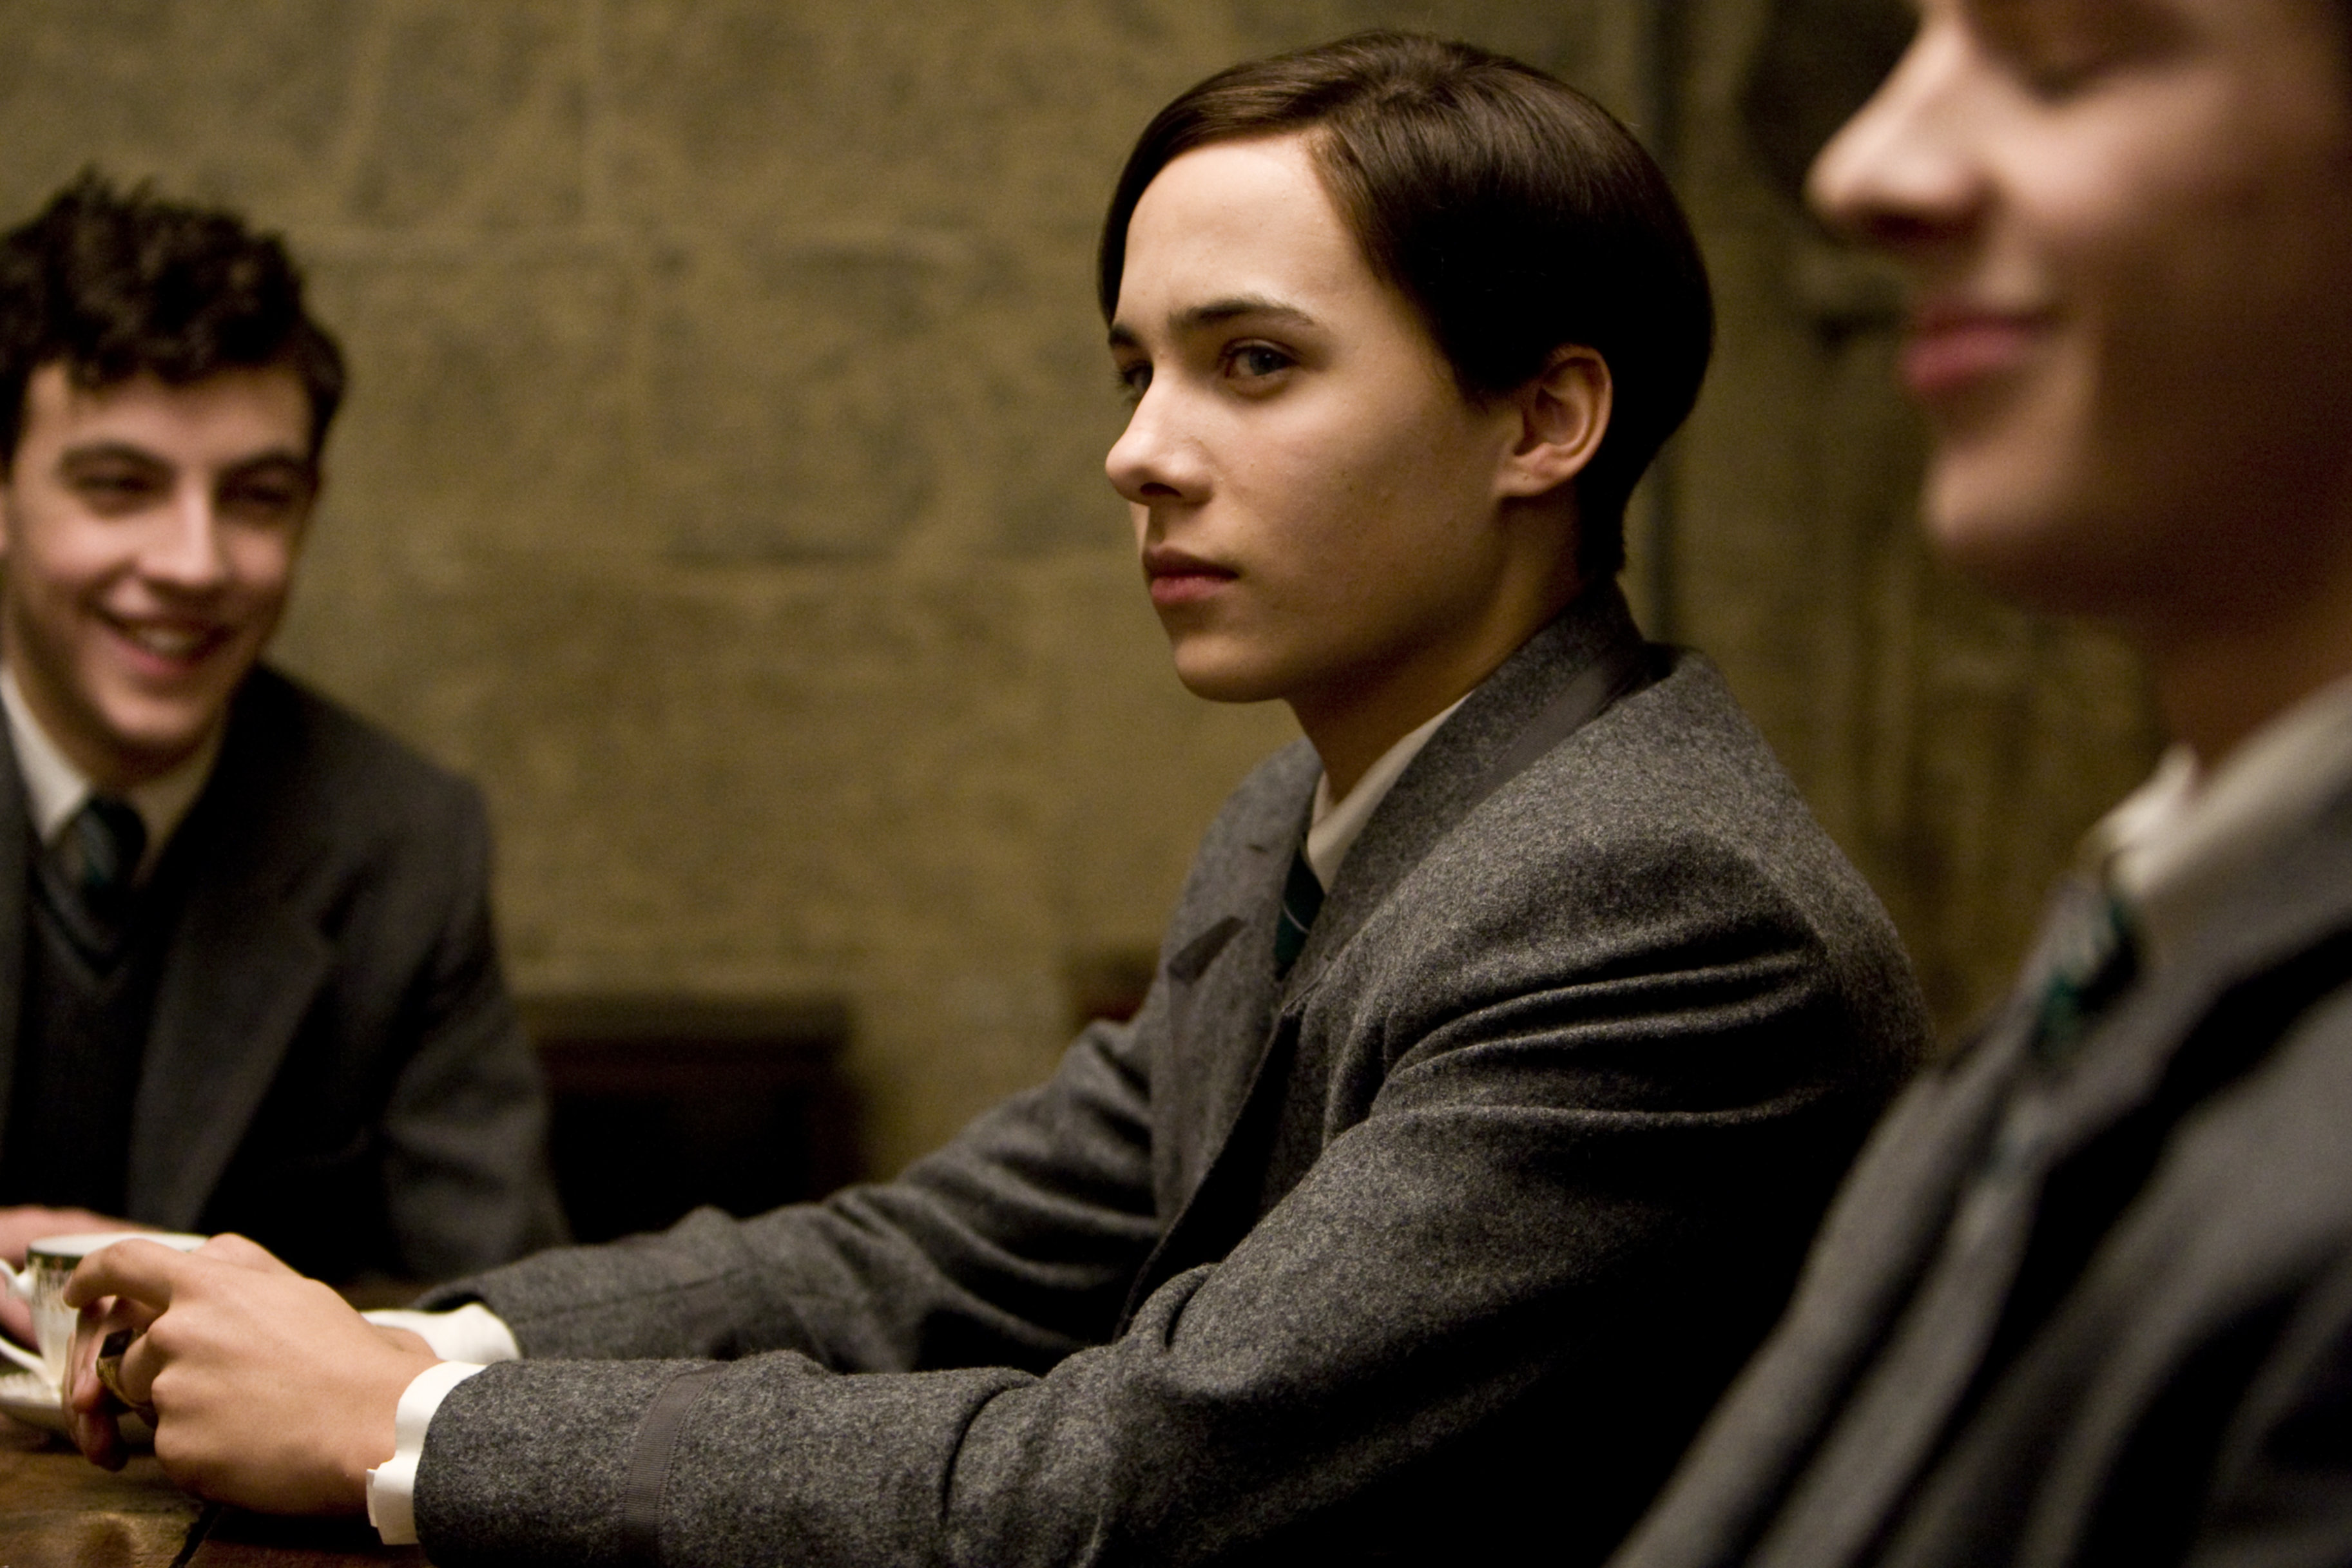 family members, When the young Voldemort from Harry Potter and the Half-Blood Prince (2009) was played by Ralph Fienness' nephew